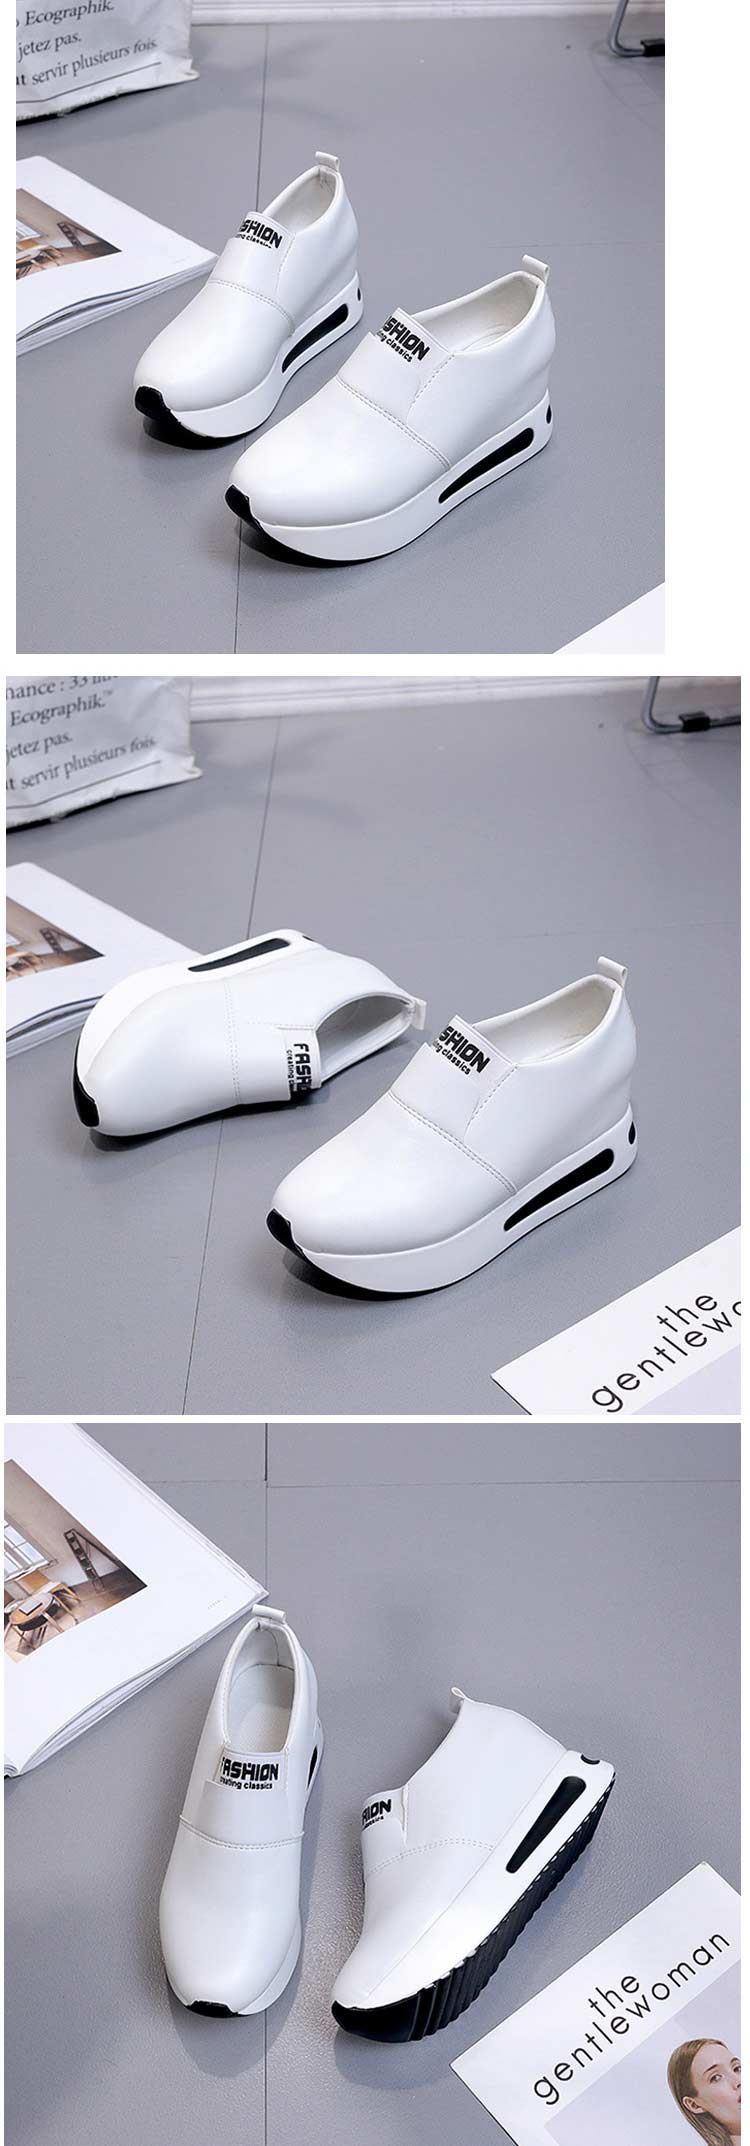 Vulcanize shoes women casual shoes 2019 new fashion solid pu women sneakers slip-on breathable shoes woman zapatos de mujer (27)